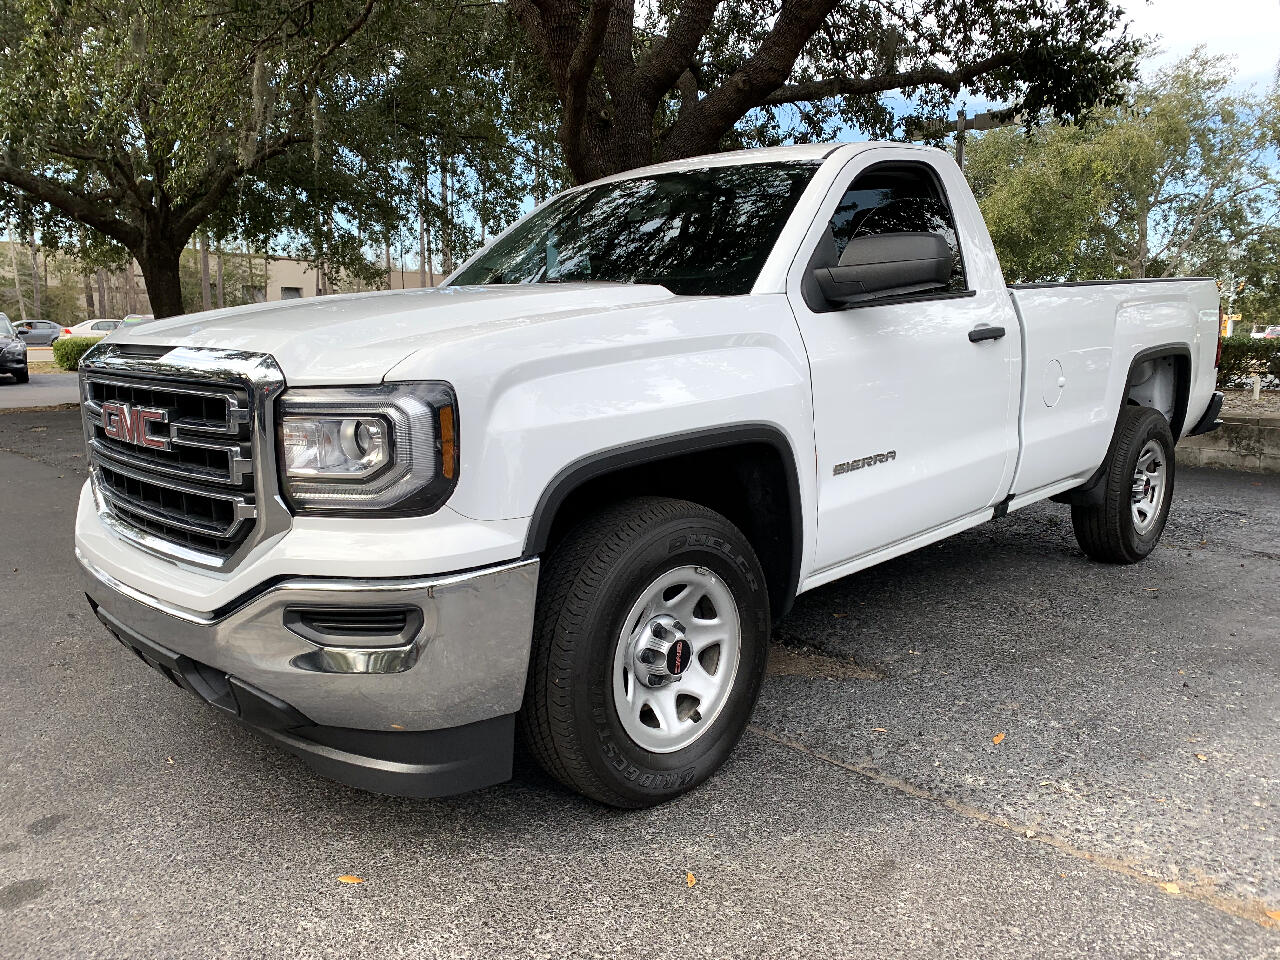 2017 GMC Sierra 1500 2WD Regular Cab Long Bed